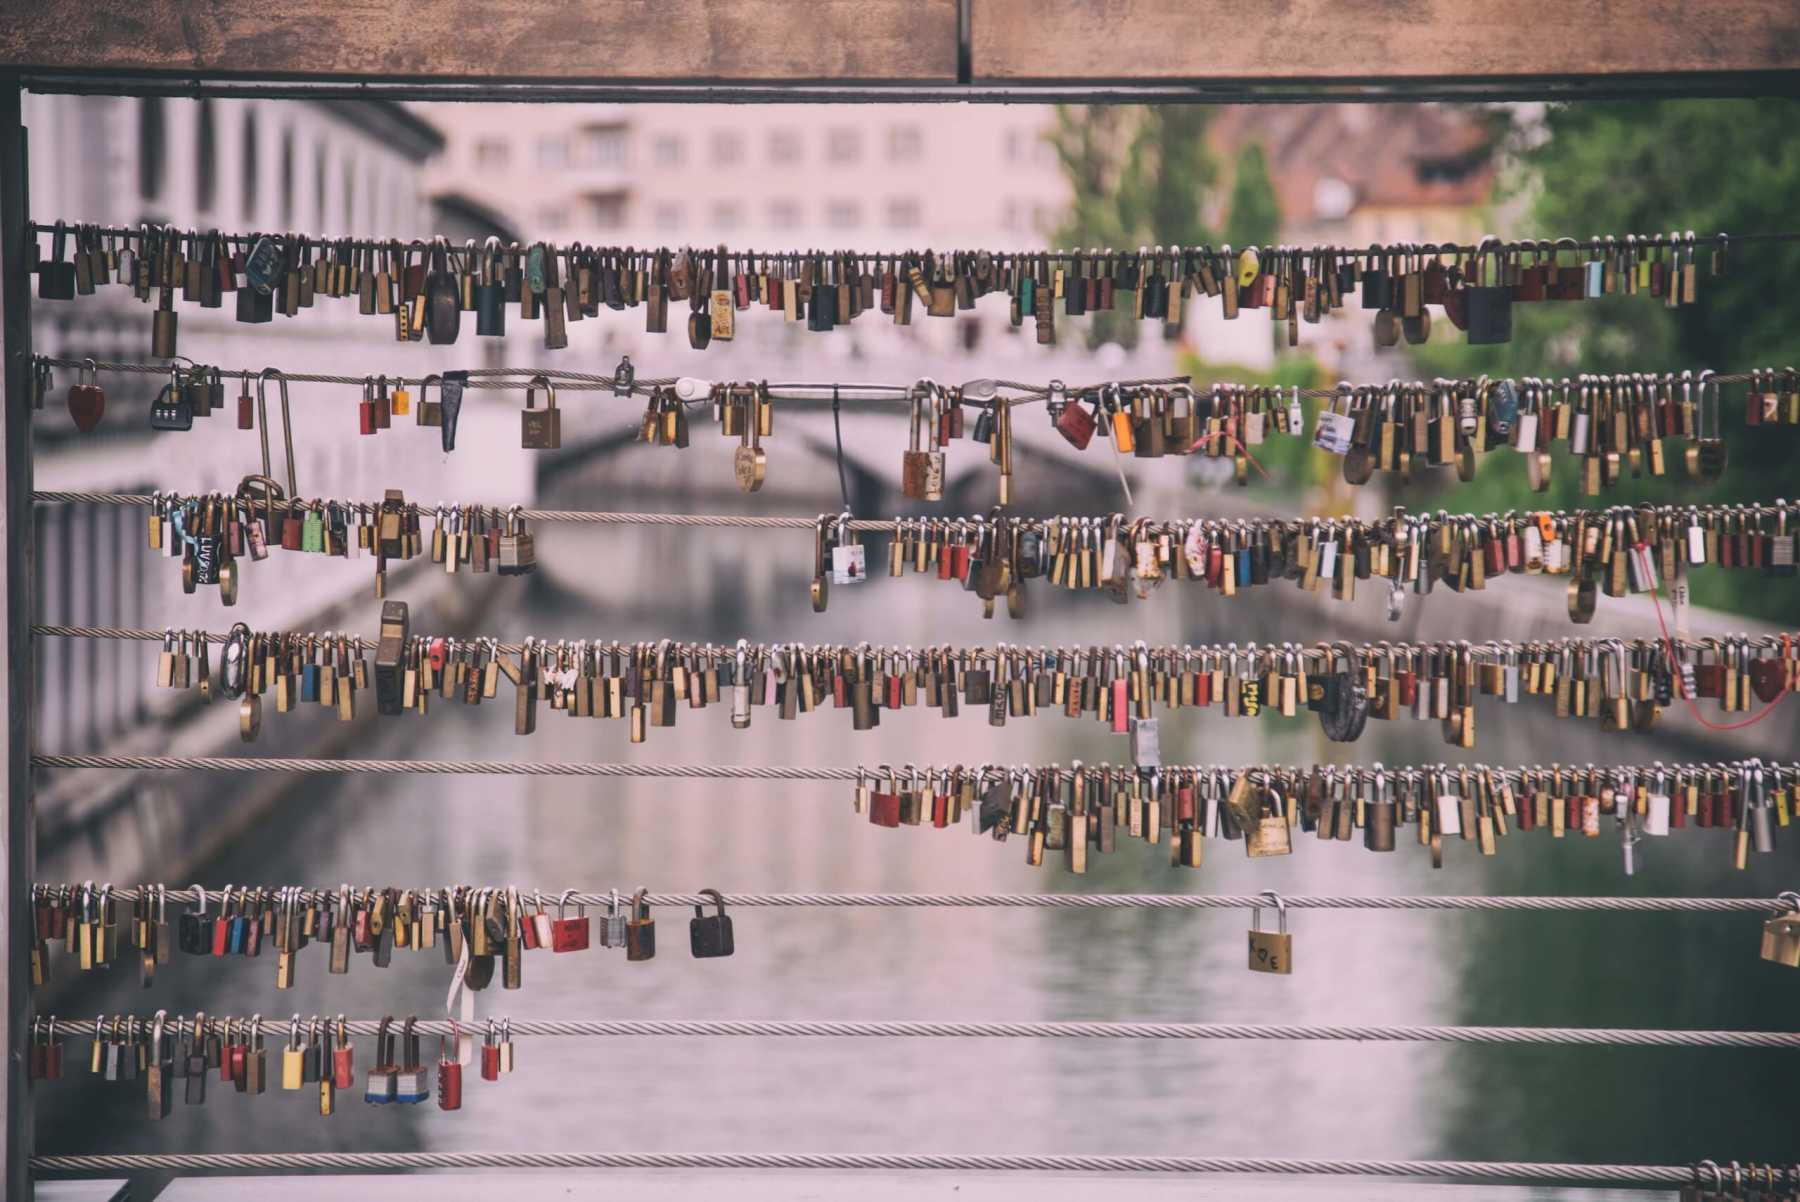 Dozens of padlocks attached to a bridge.